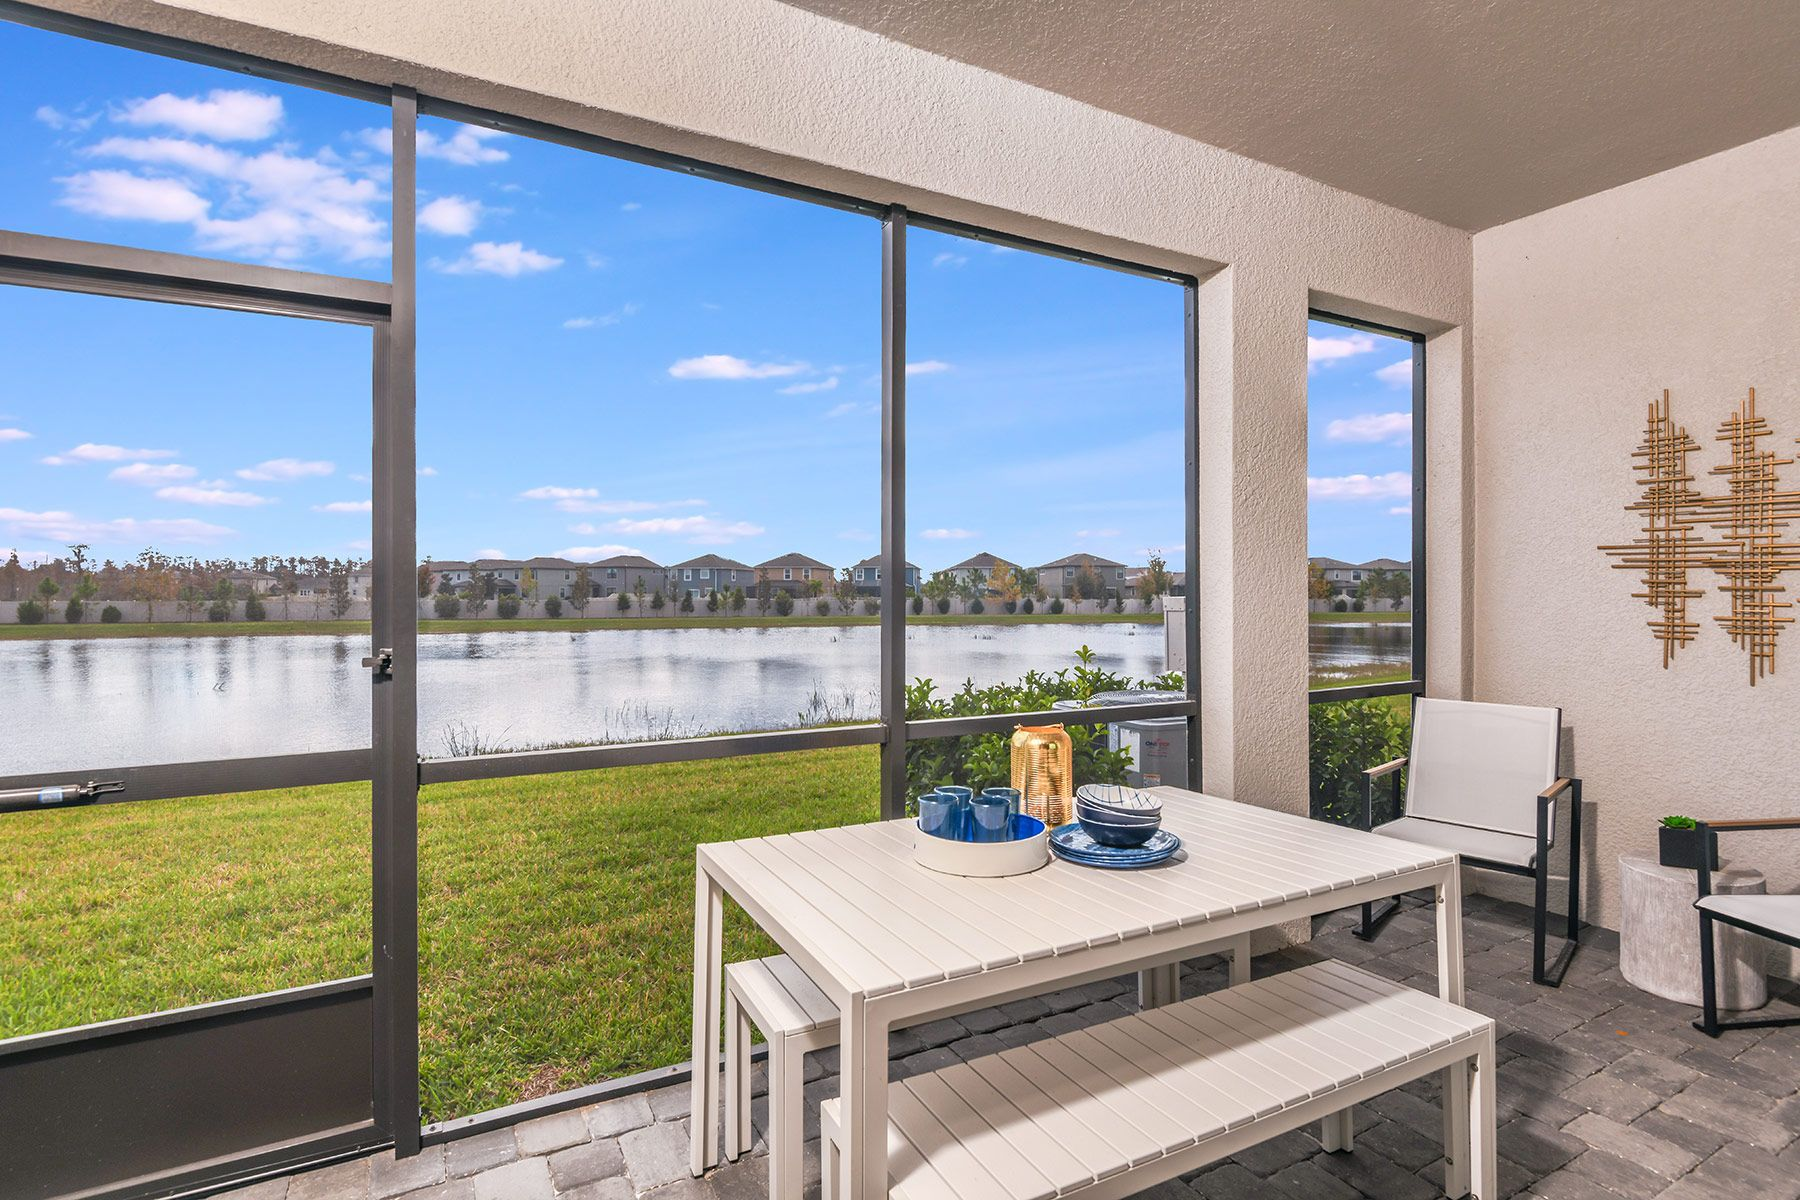 Exterior:Marianna model home from our Parkview community in Lutz